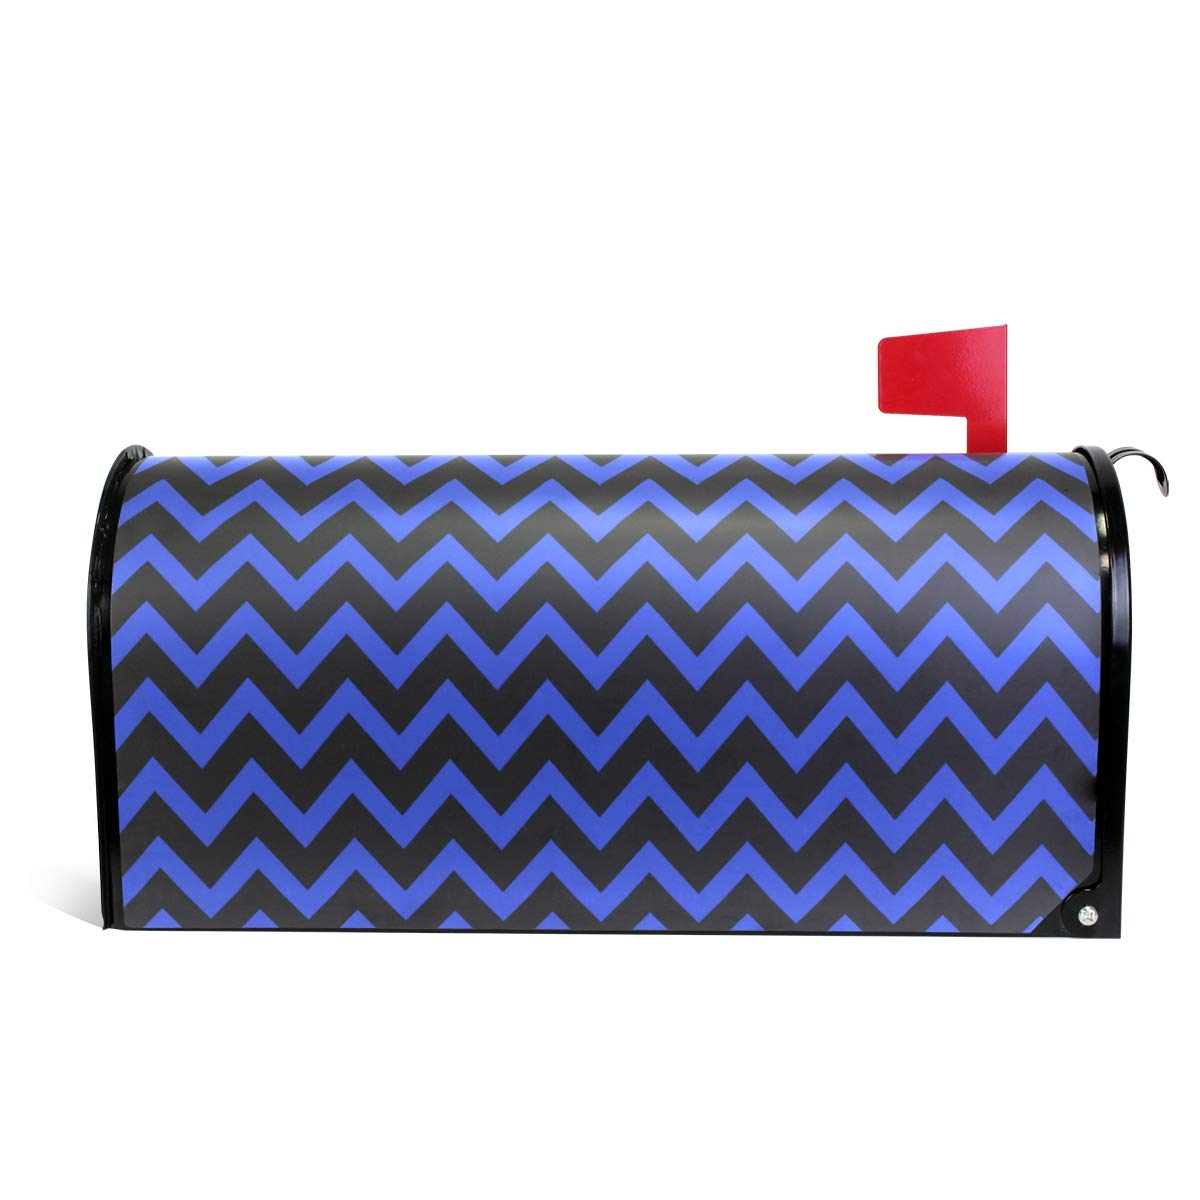 CHENG XIN Mailbox Cover Personalized Chevron Light Magnetic PVC Suitable for US Mailbox